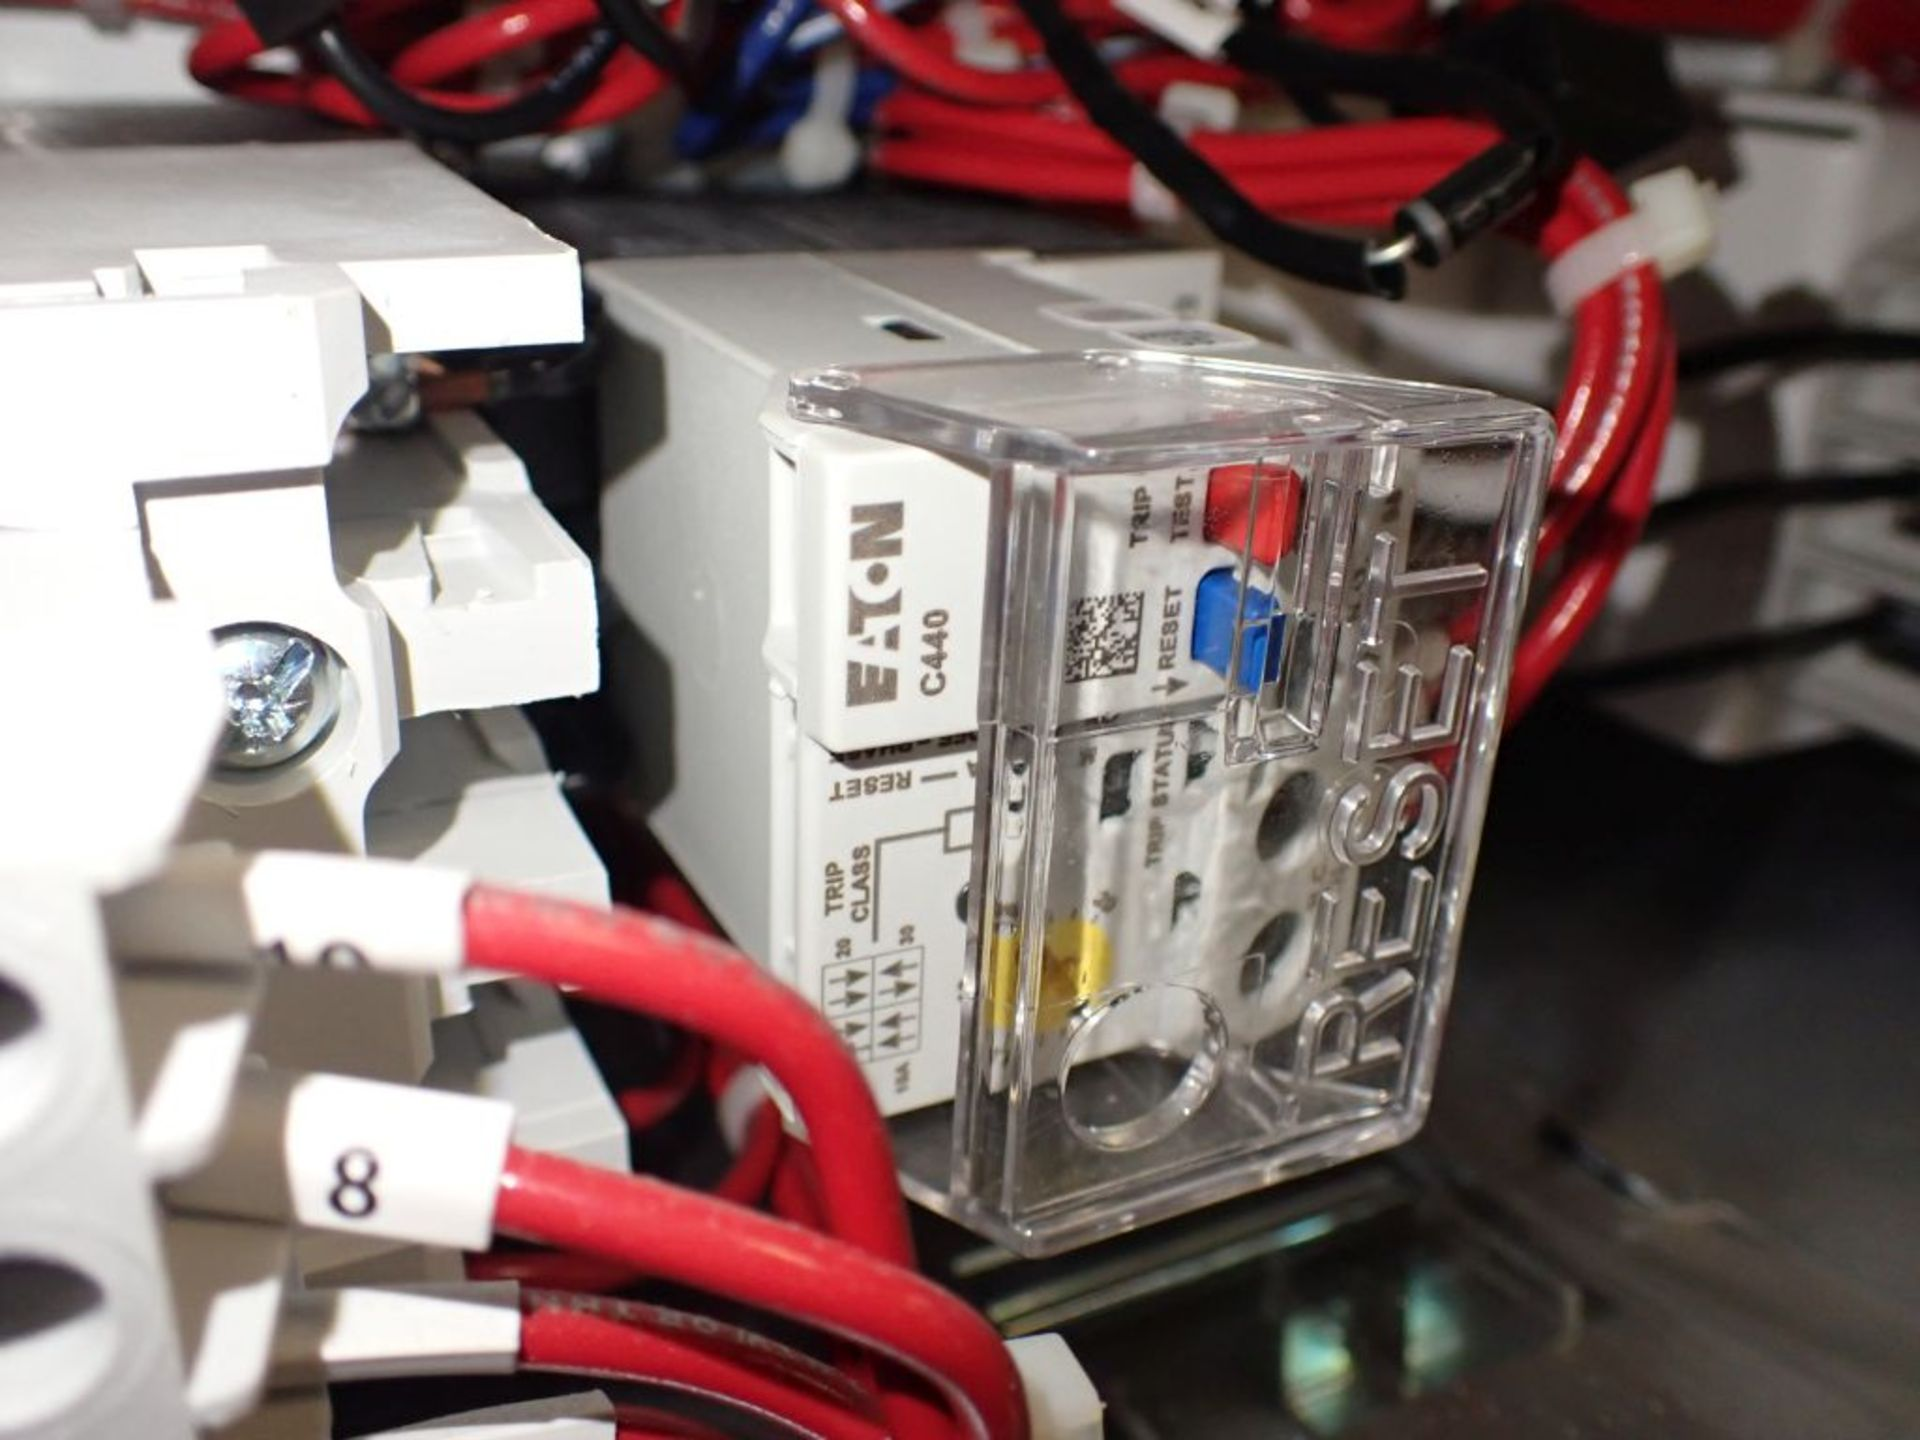 Eaton Freedom 2100 Series Motor Control Center | (11) F206-30A-10HP; (5) F206-15A-10HP; (1) SVX900- - Image 44 of 102